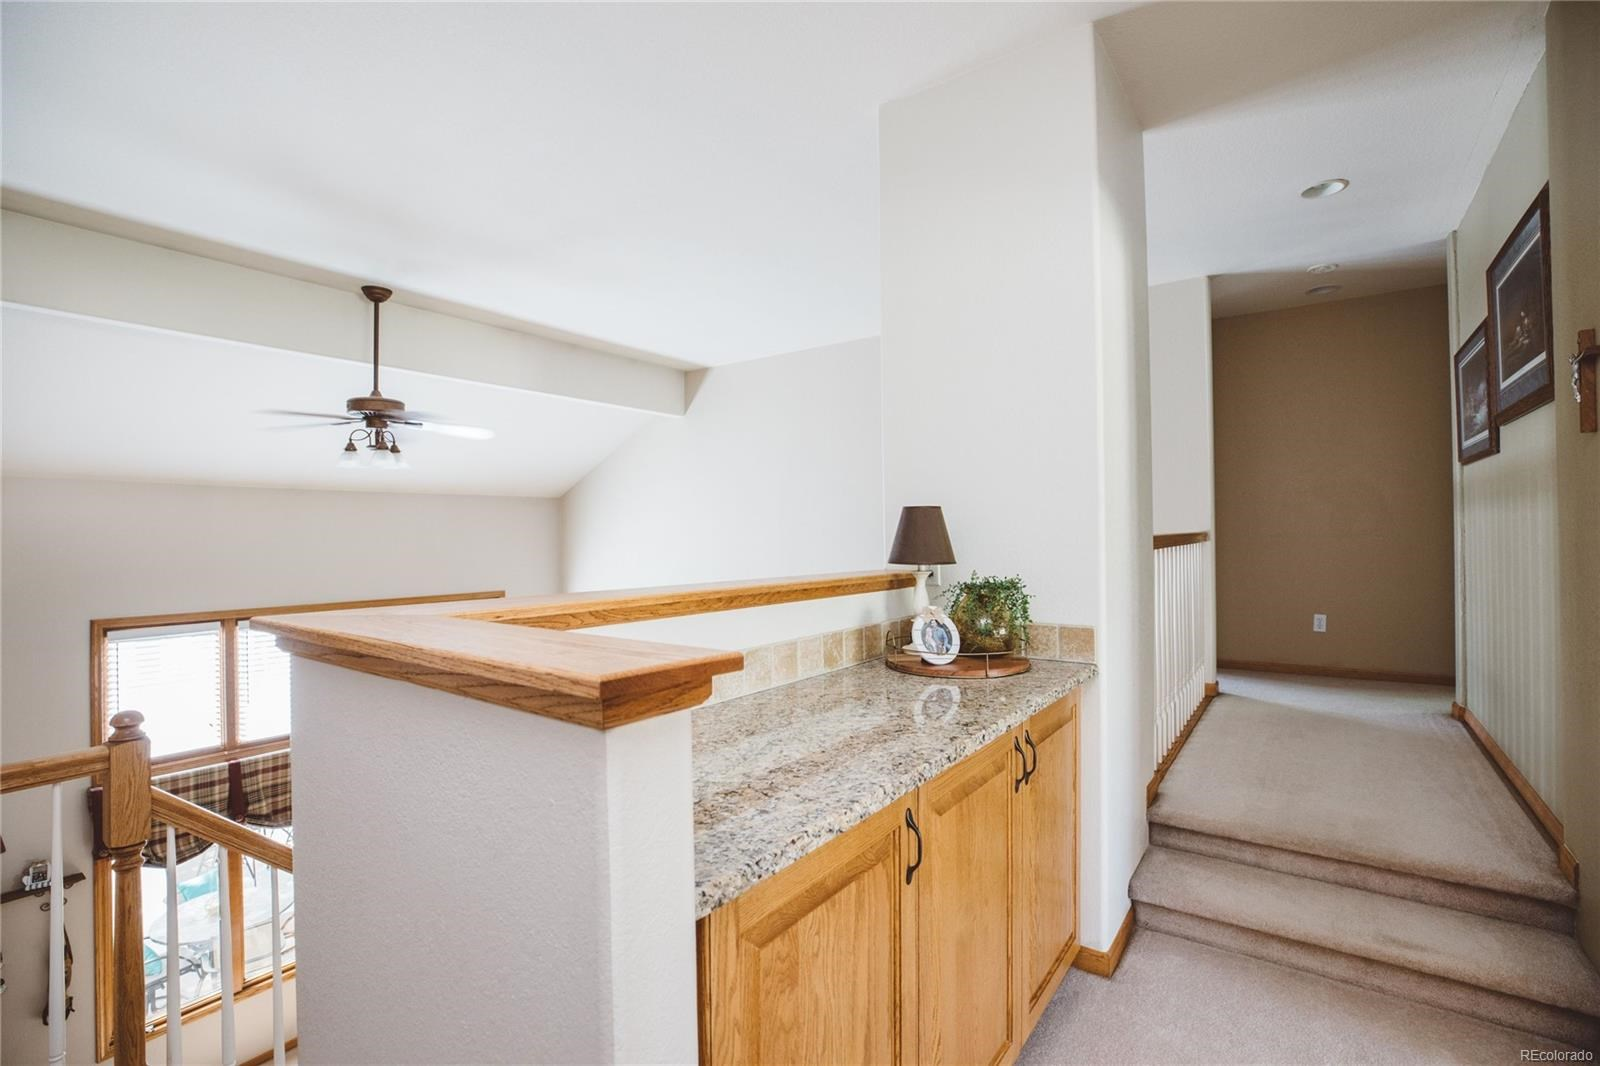 MLS# 4033949 - 20 - 3713 Ashmount Drive, Fort Collins, CO 80525